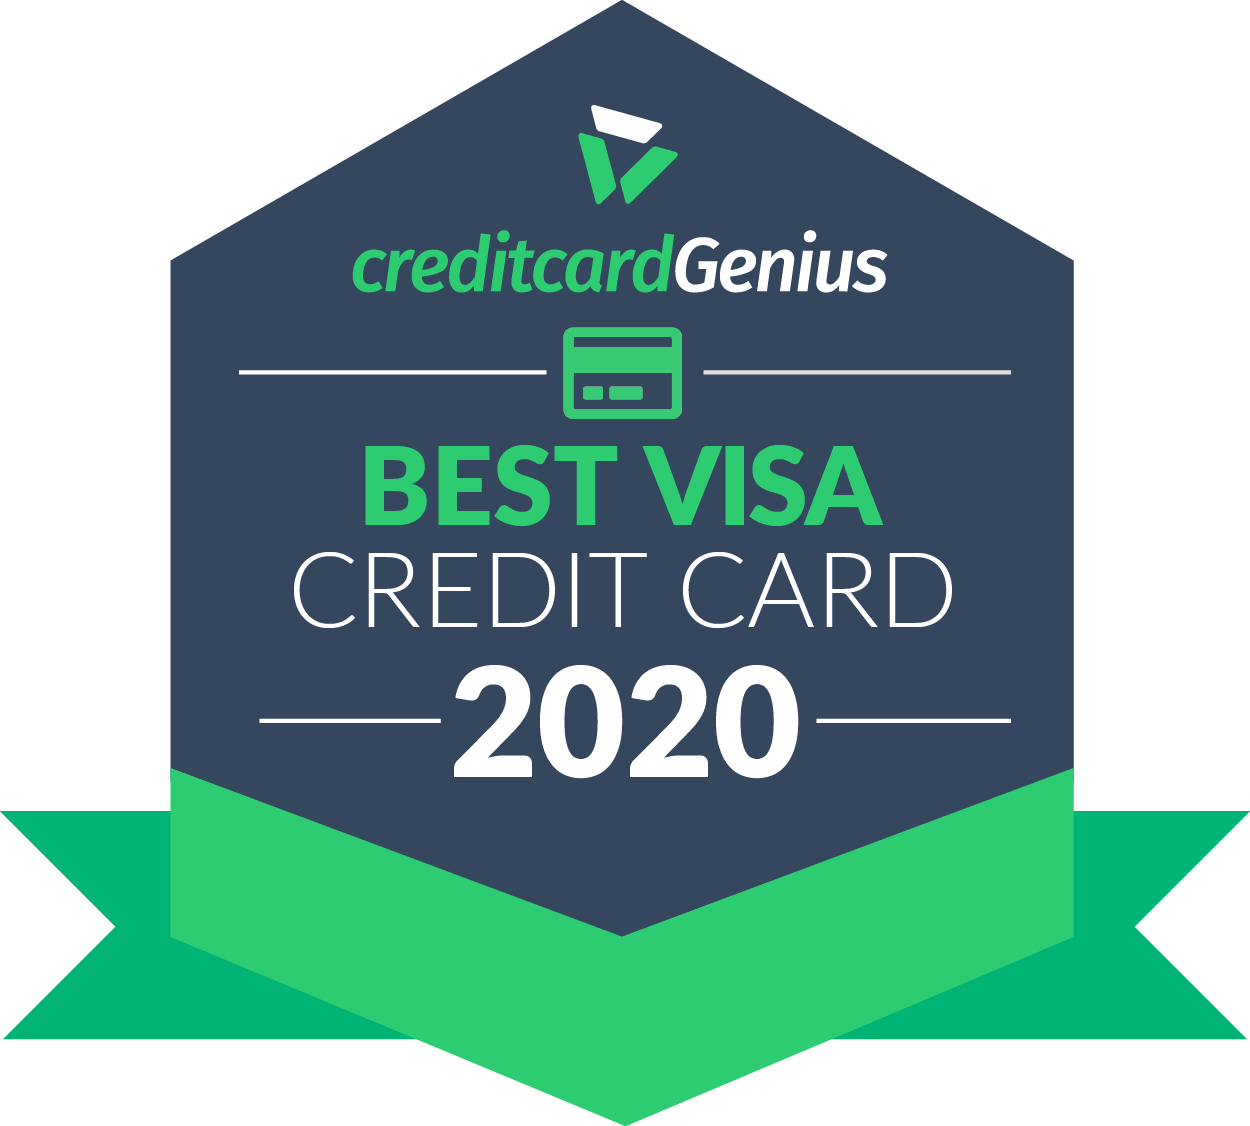 Best Visa credit cards in Canada for 2020 award seal